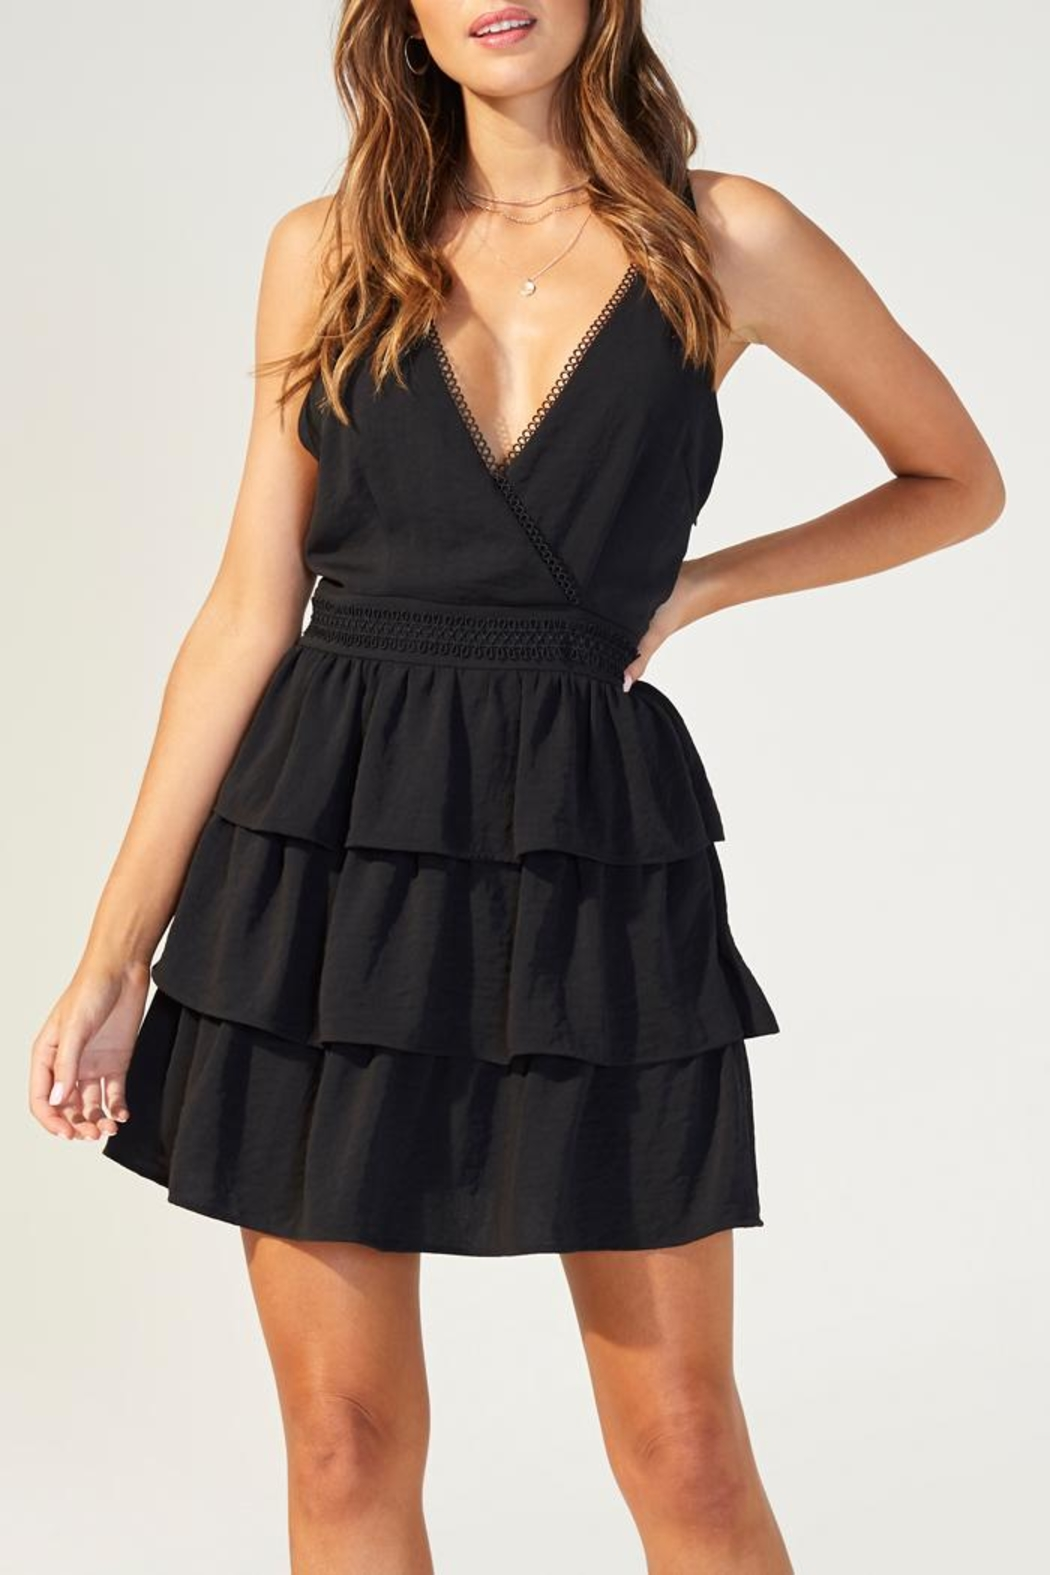 MINKPINK Tiered Strappy Dress - Main Image